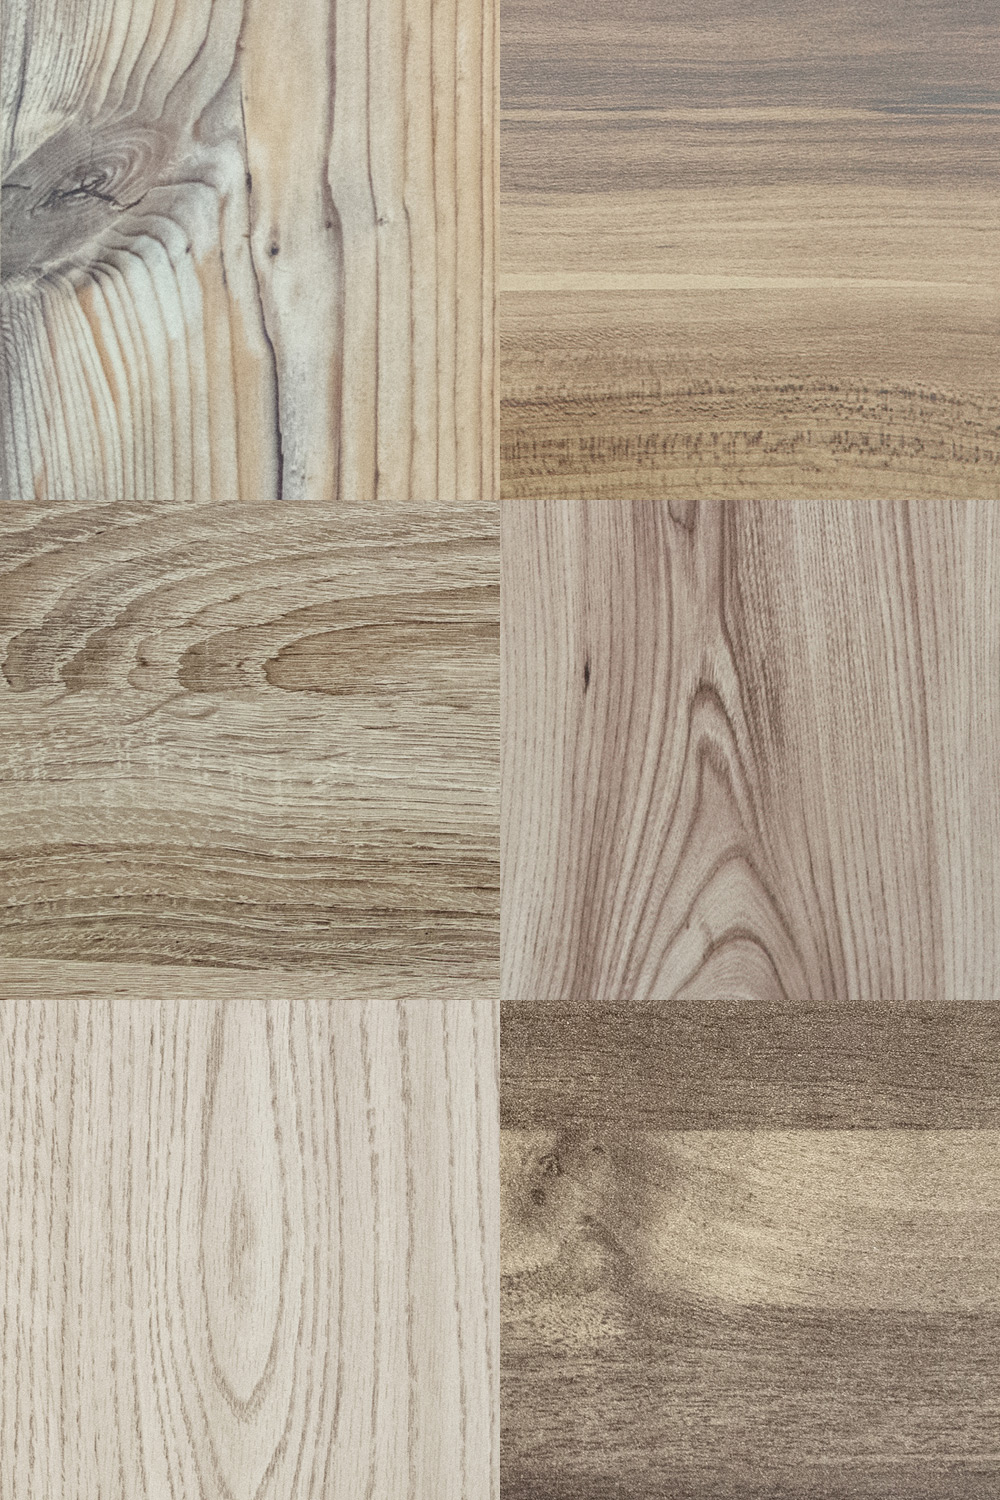 6 Fine Wood Textures Vol.1 | GraphicBurger